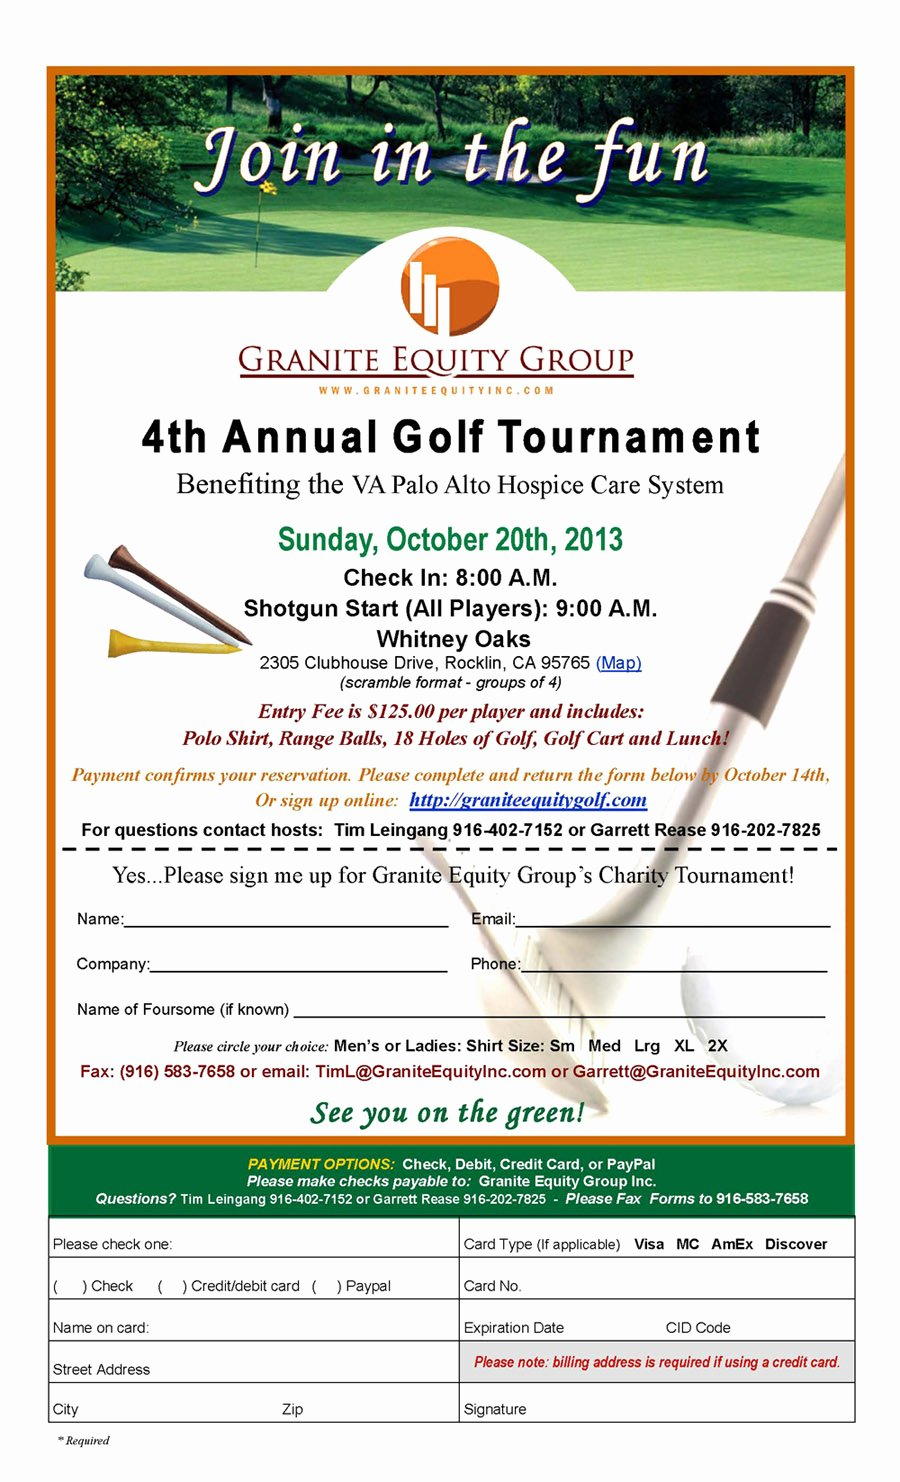 granite equity group 4th annual golf tournament